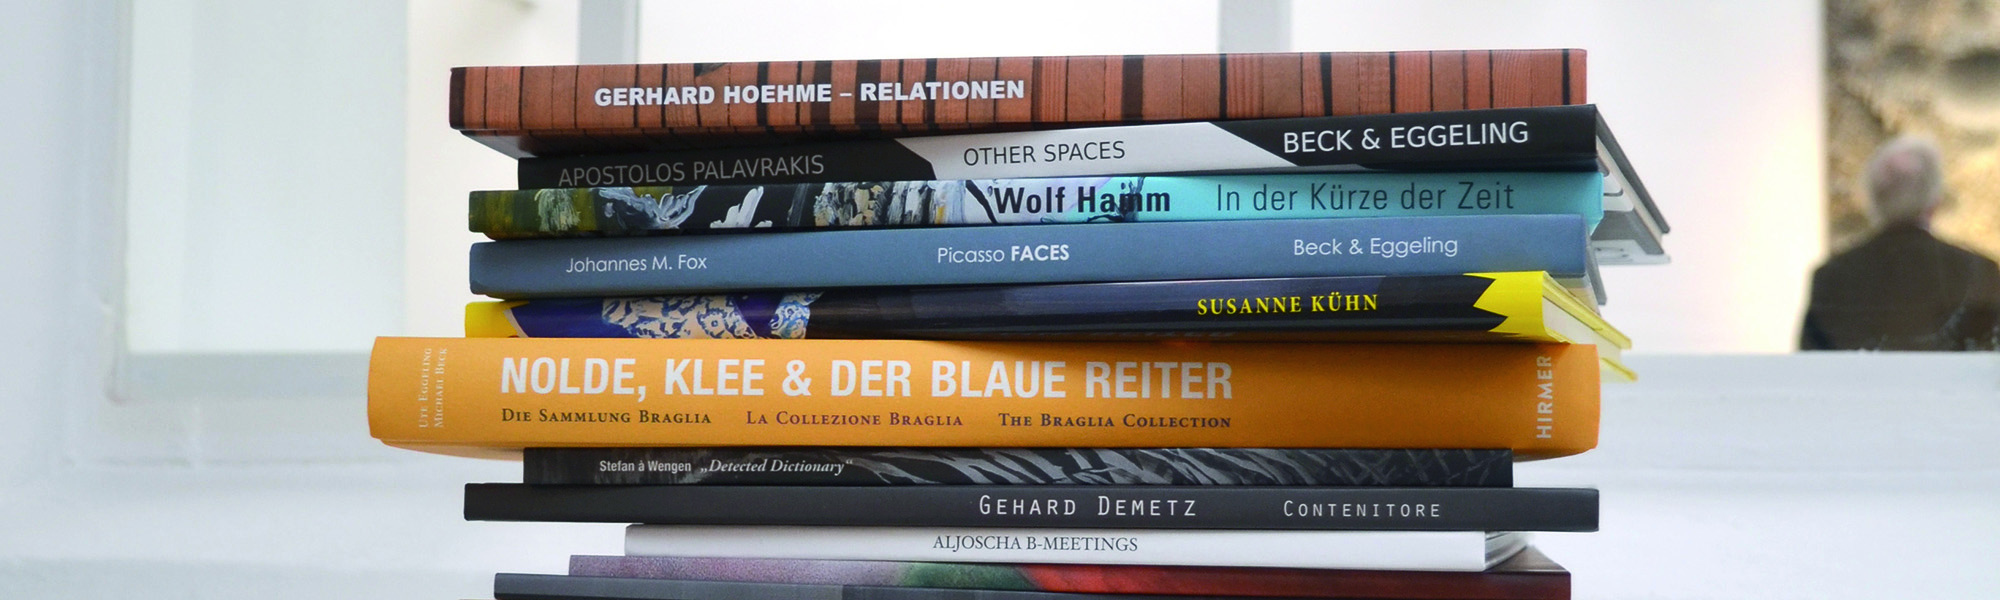 Bücherstapel_slider1.jpg